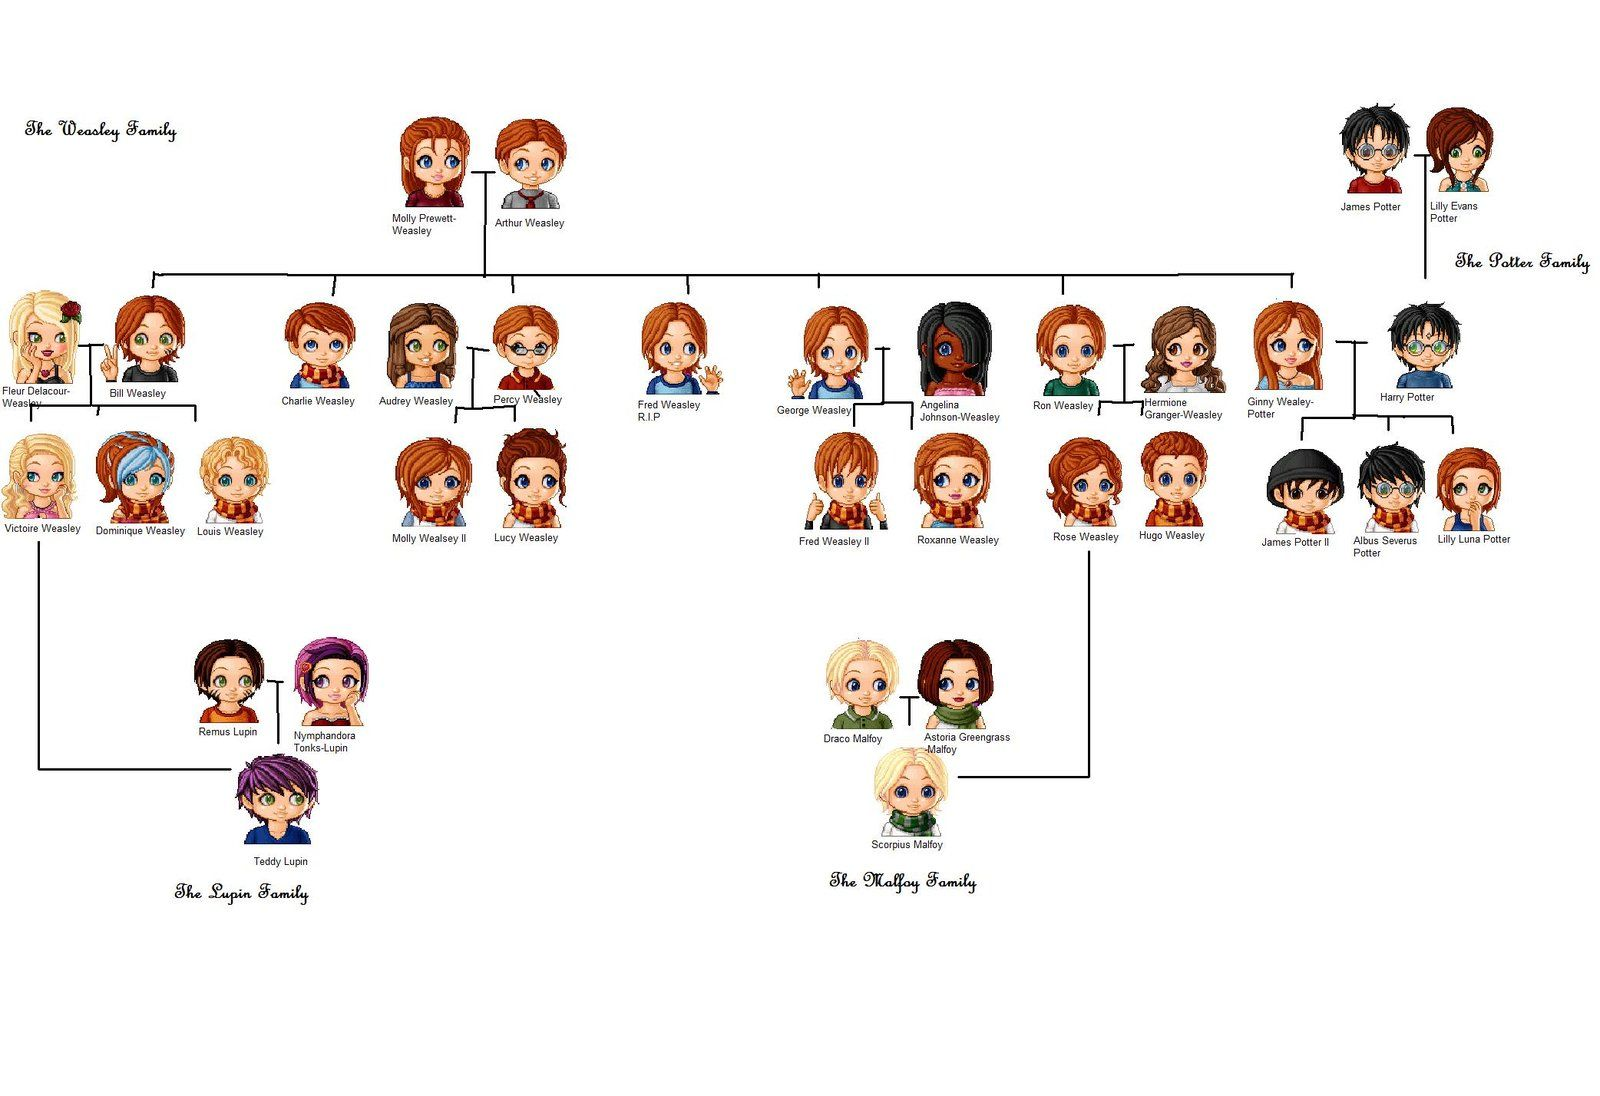 The Weasley Family Tree By Twilightluvr1997 On Deviantart Weasley Family Weasley Family Tree Harry Potter Family Tree